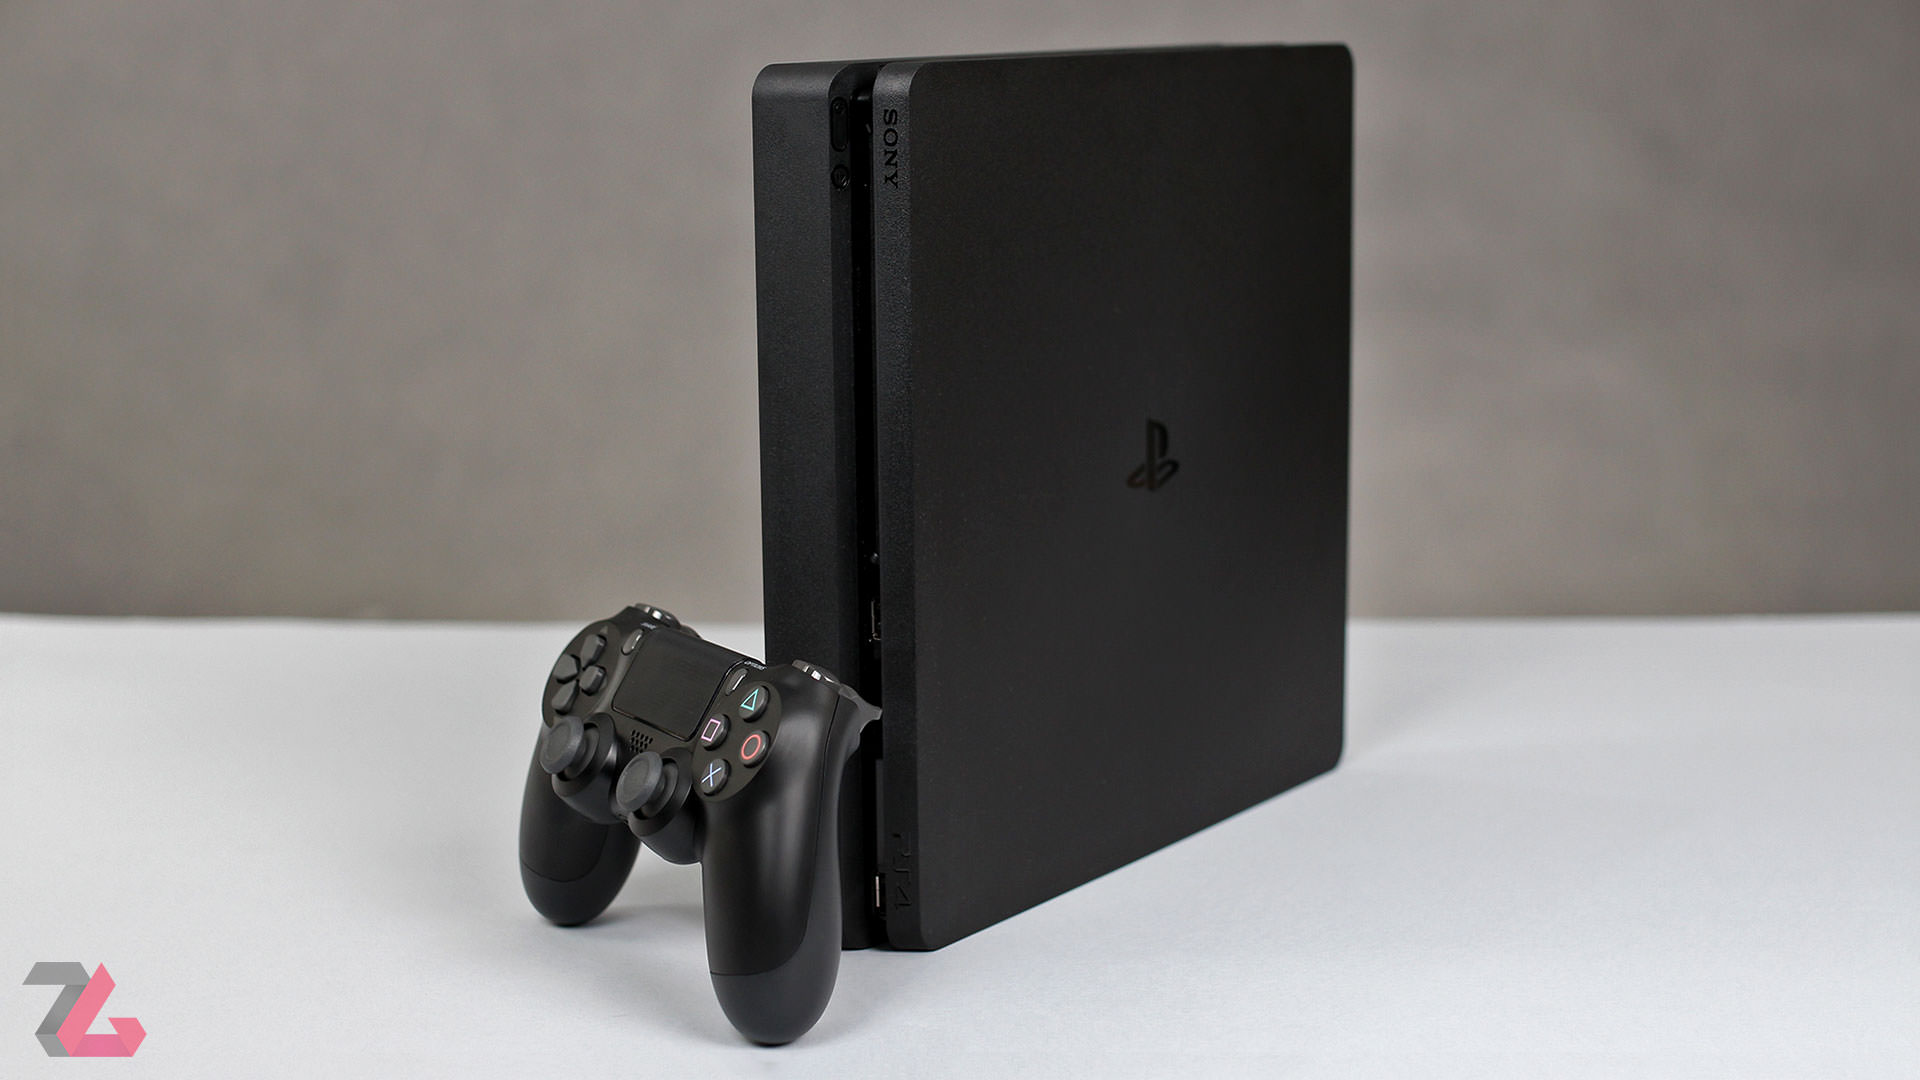 626fc403 25ec 41c7 a058 a0926716bdbd - کنسول با بازی Playstation 4 Slim 1TB Full Game